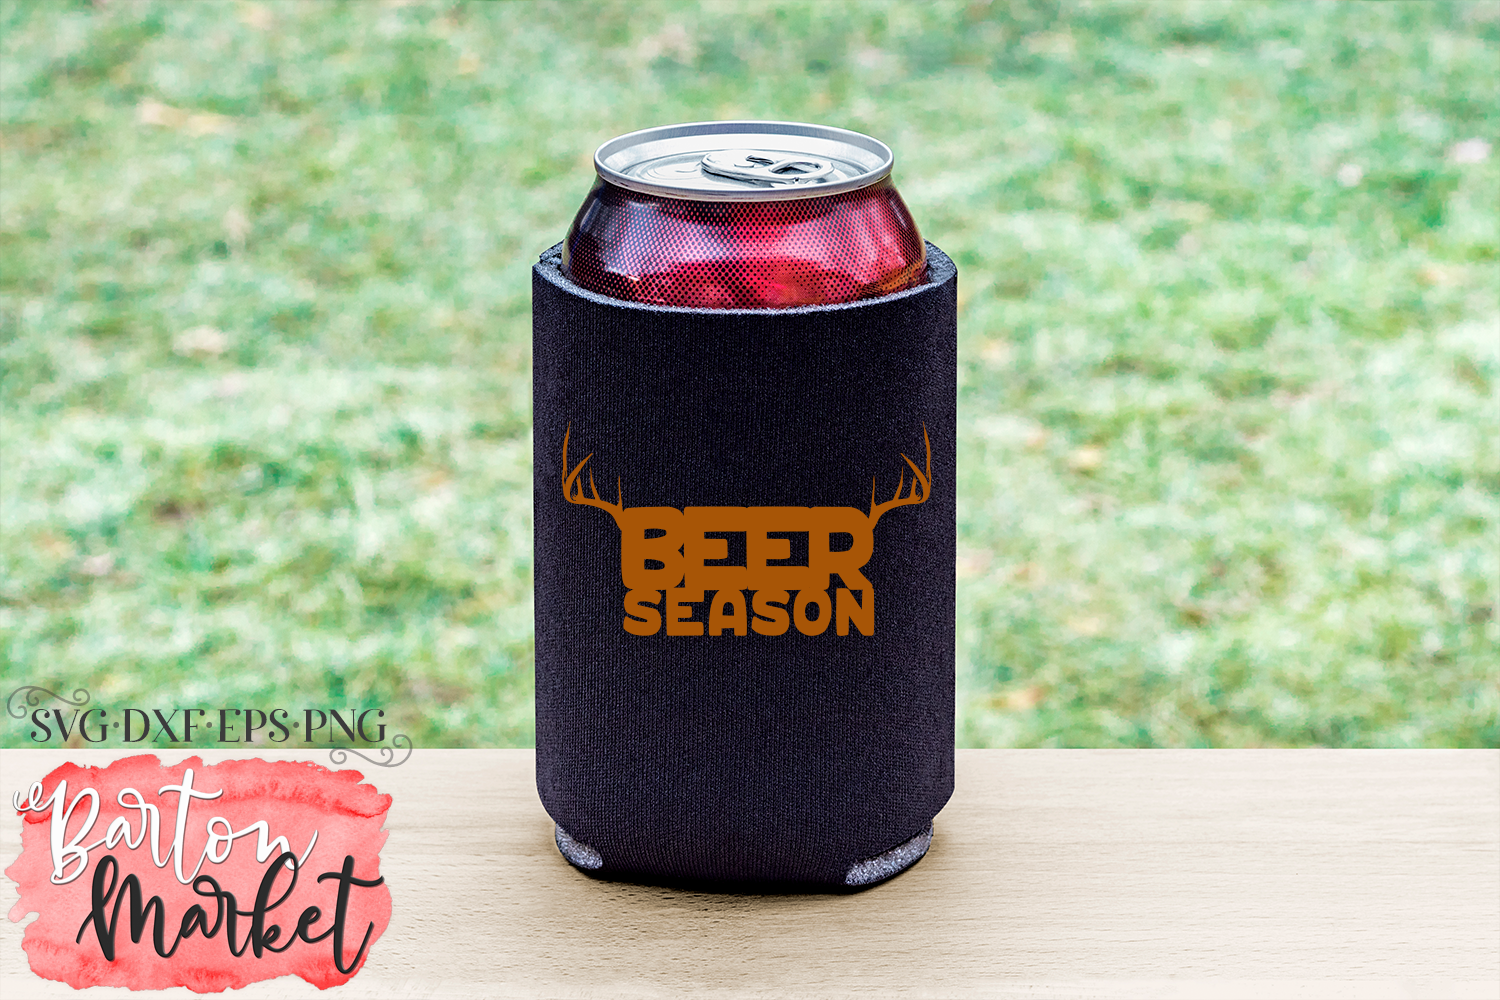 Beer Season SVG DXF EPS PNG example image 2